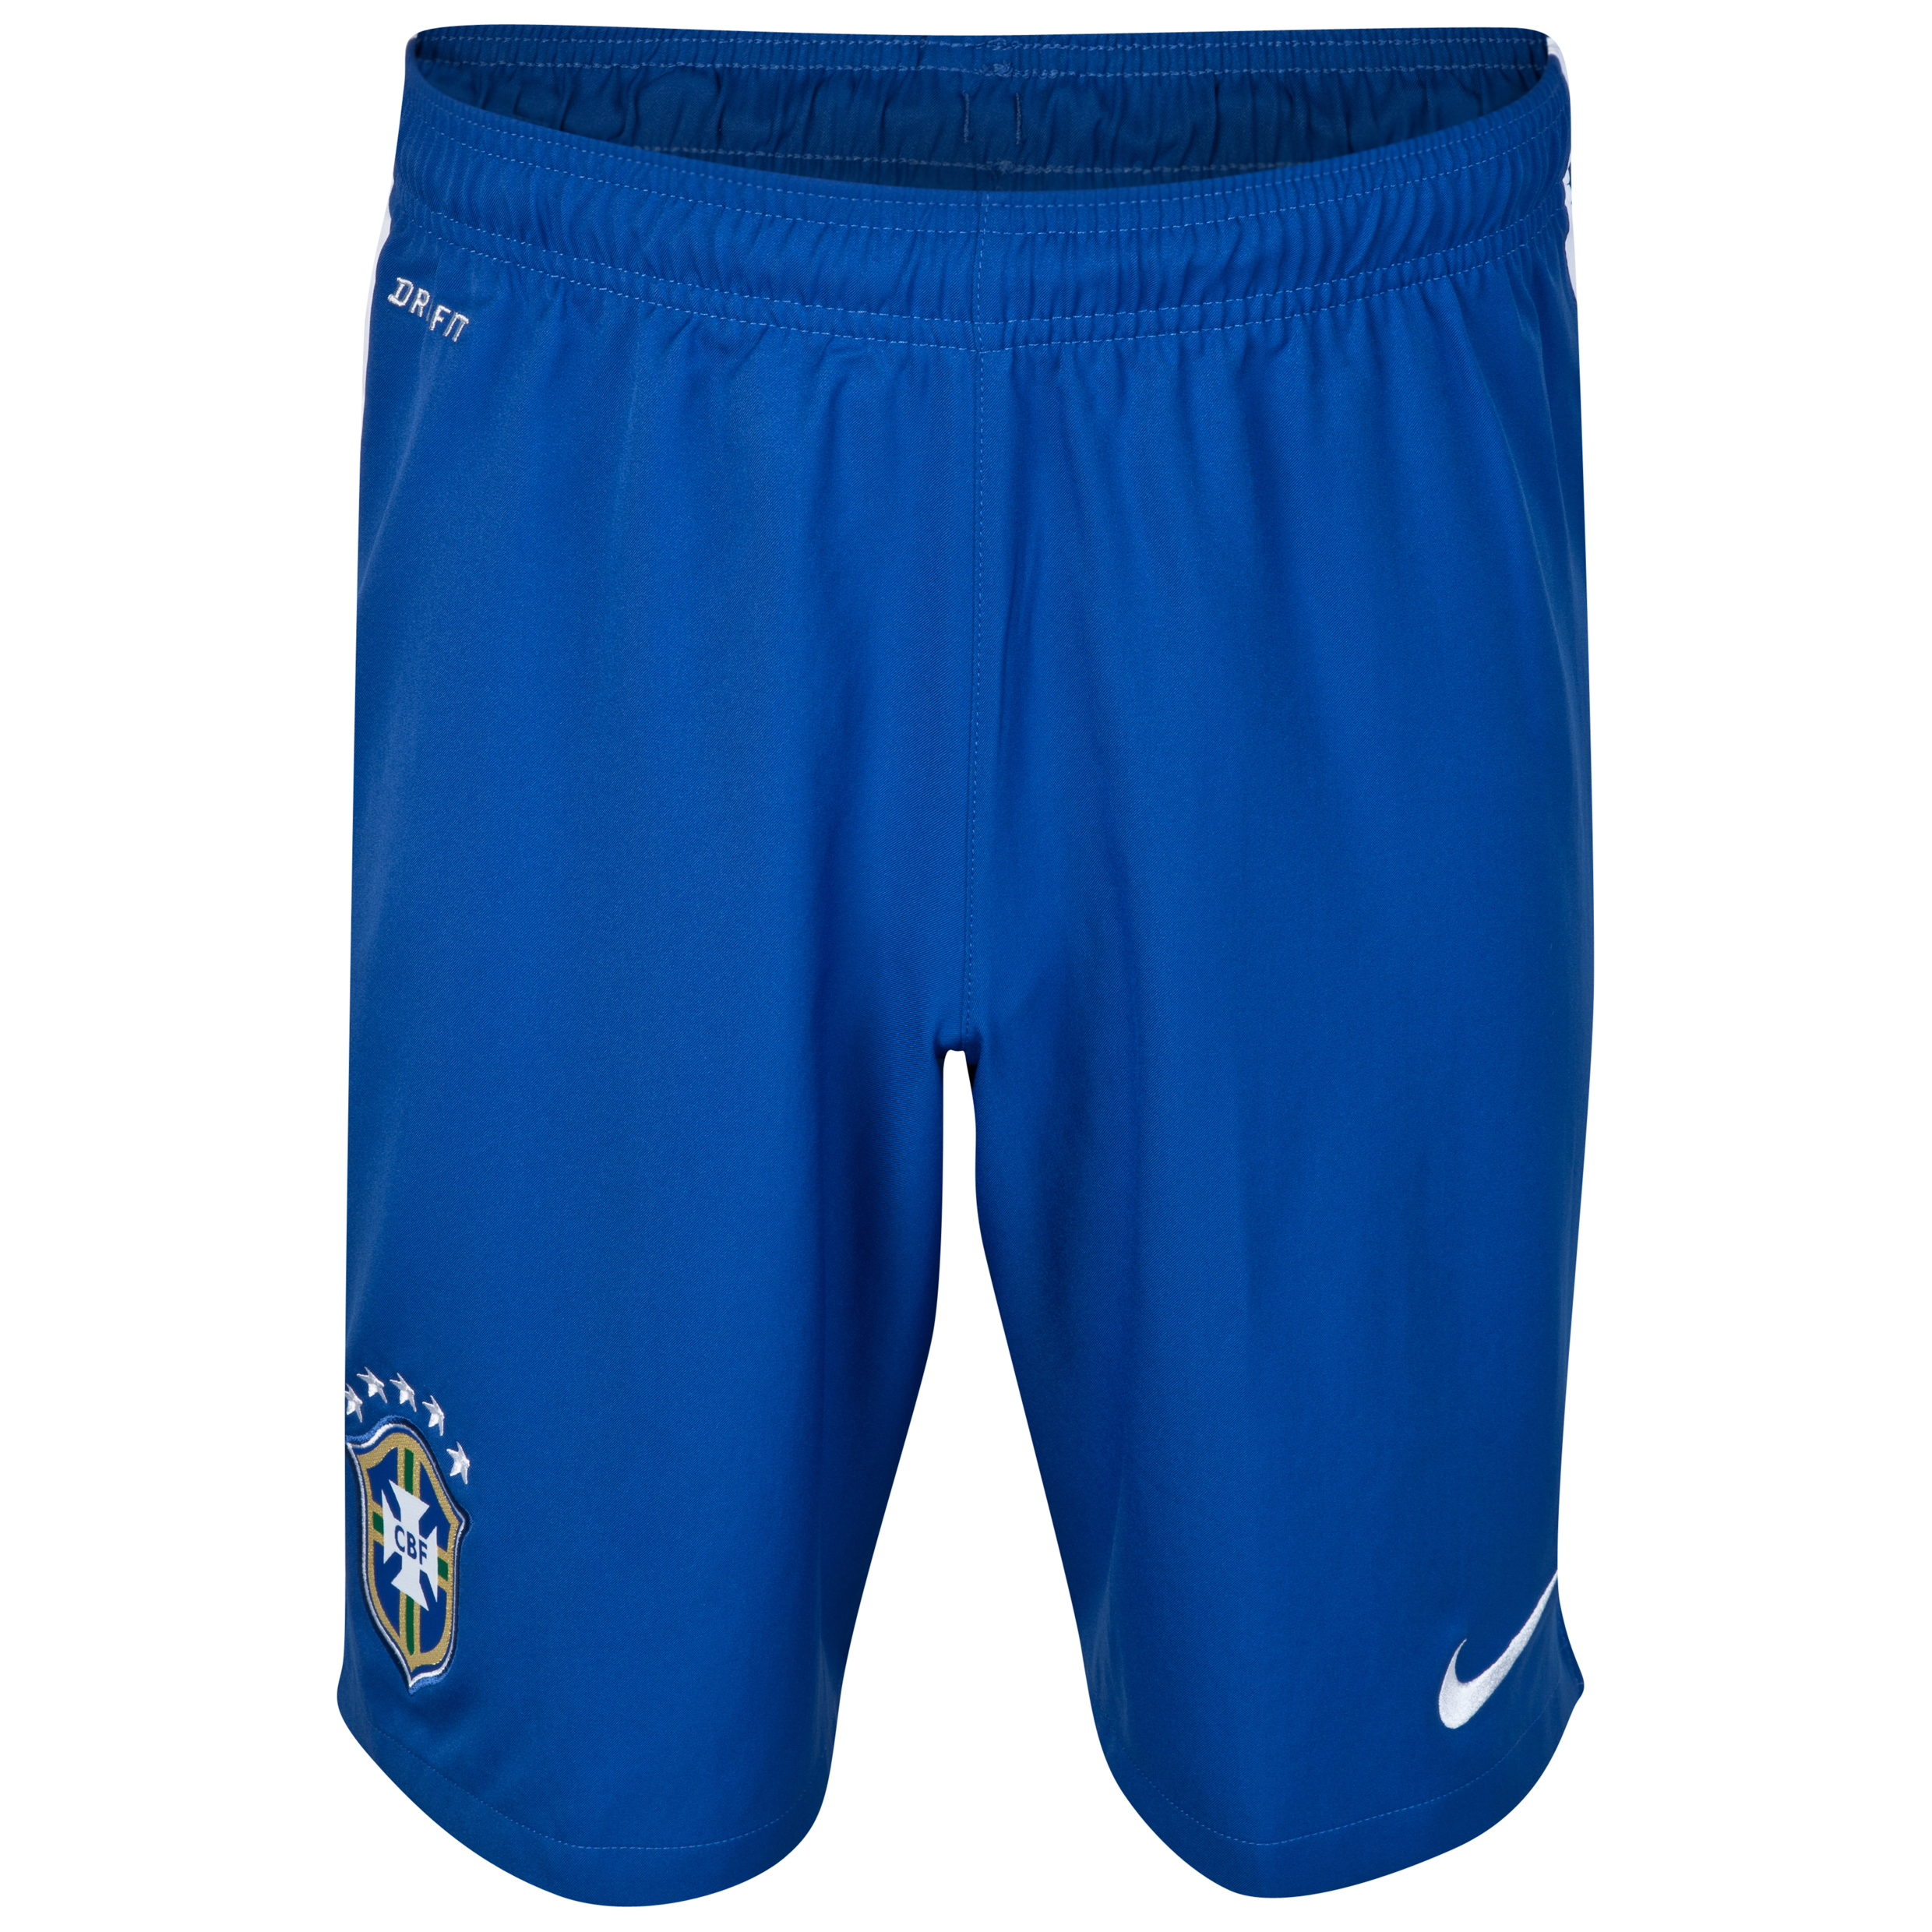 Brazil Home/Away Shorts 2013/14 Blue